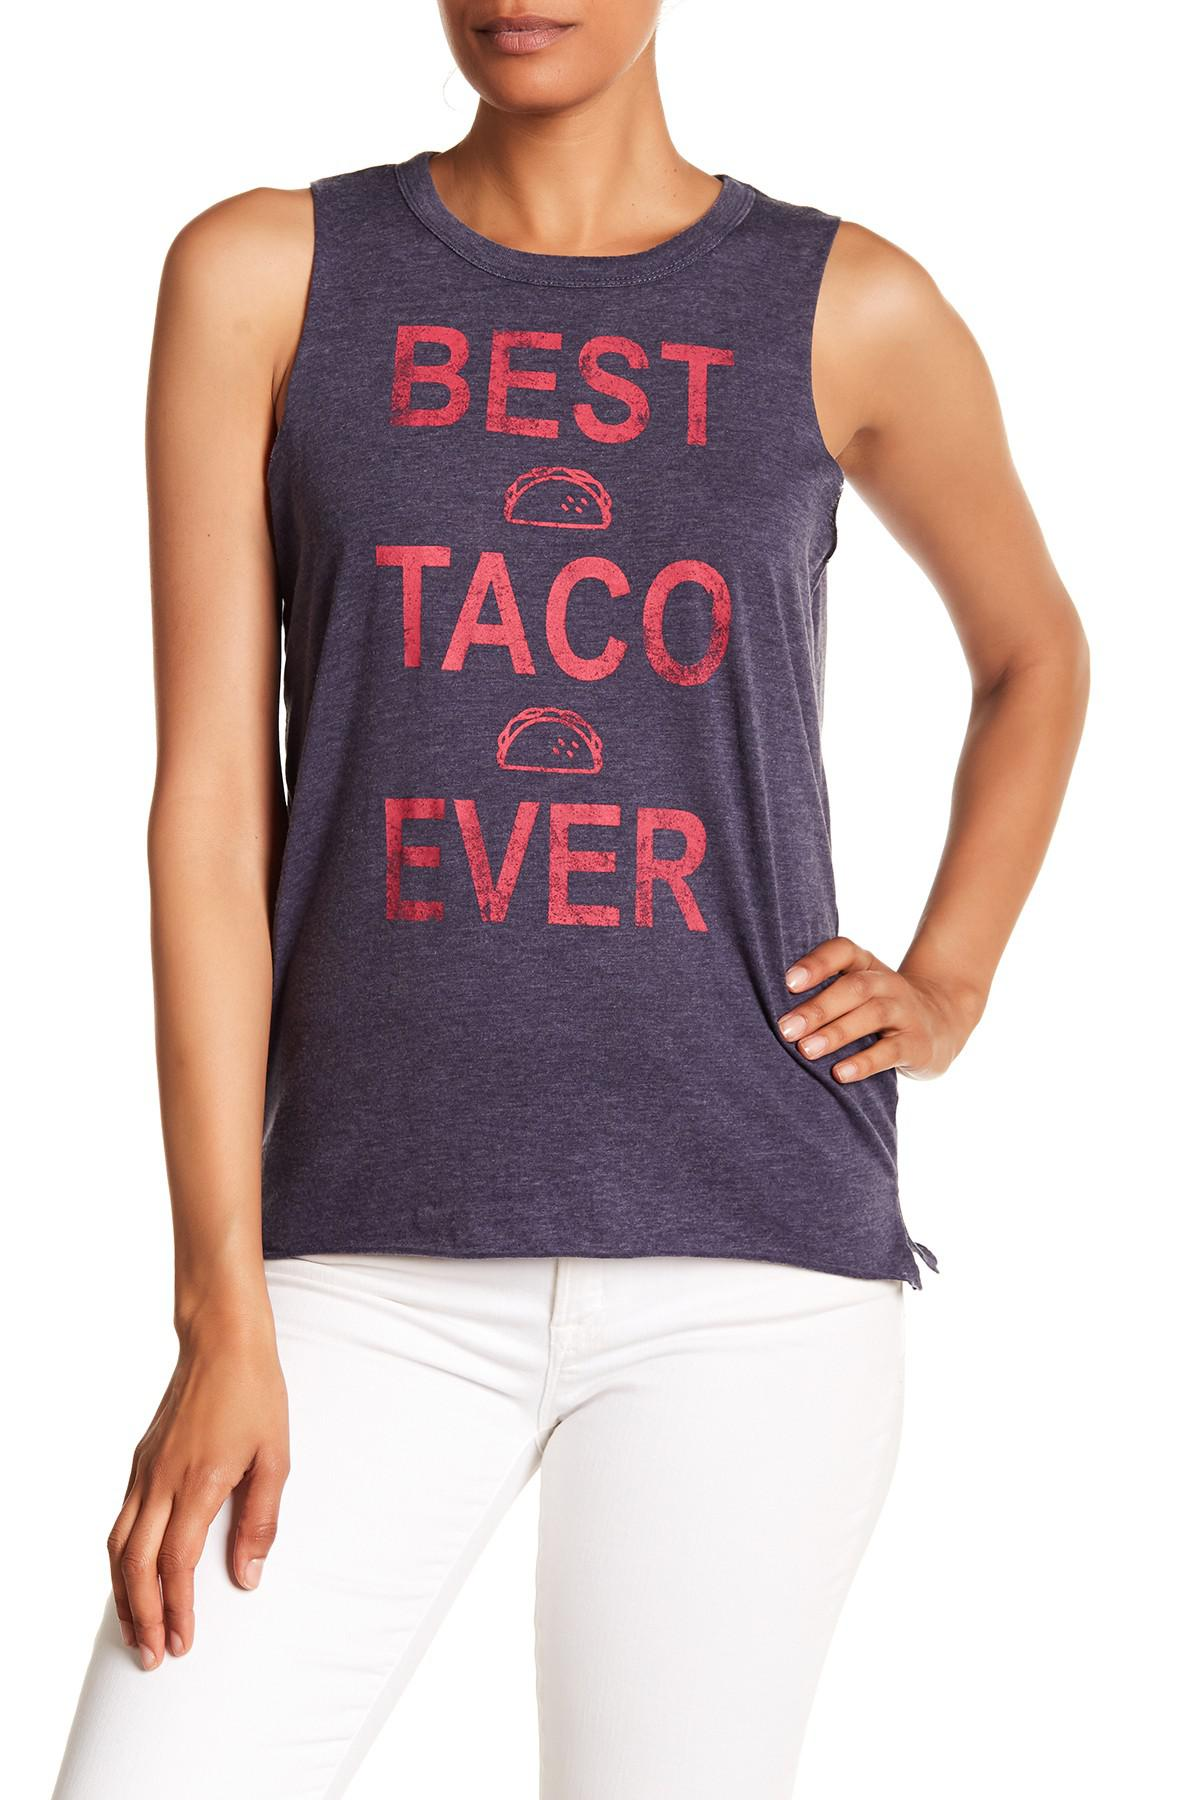 5bd7e0e96cfbb7 Lyst - Chaser Best Taco Ever Muscle Tank Top